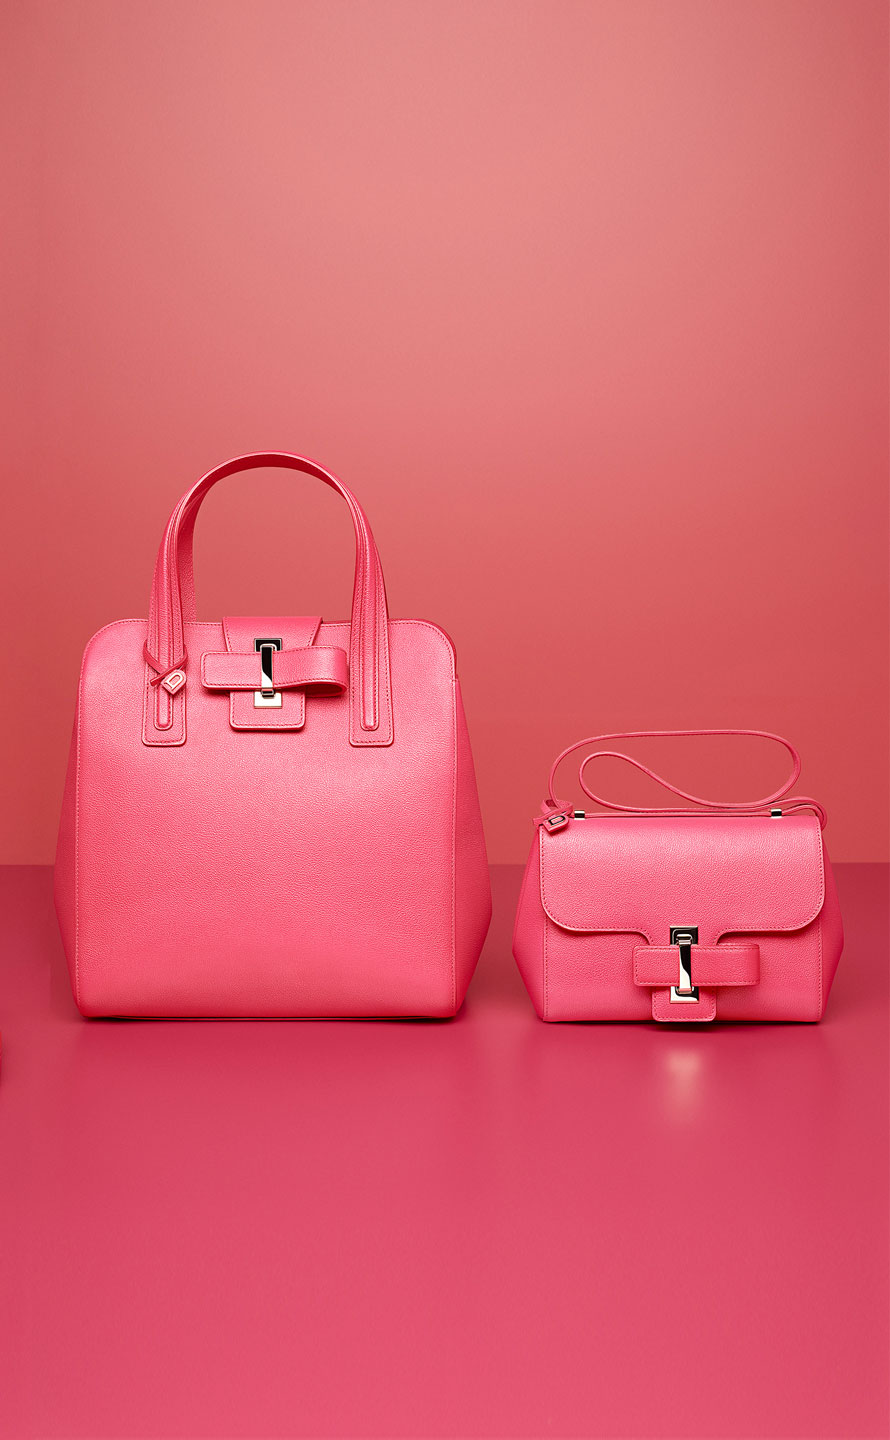 Simplissime Tote PM, Rodéo : Rose Candy - Simplissime City Mini, Rodéo : Rose Candy